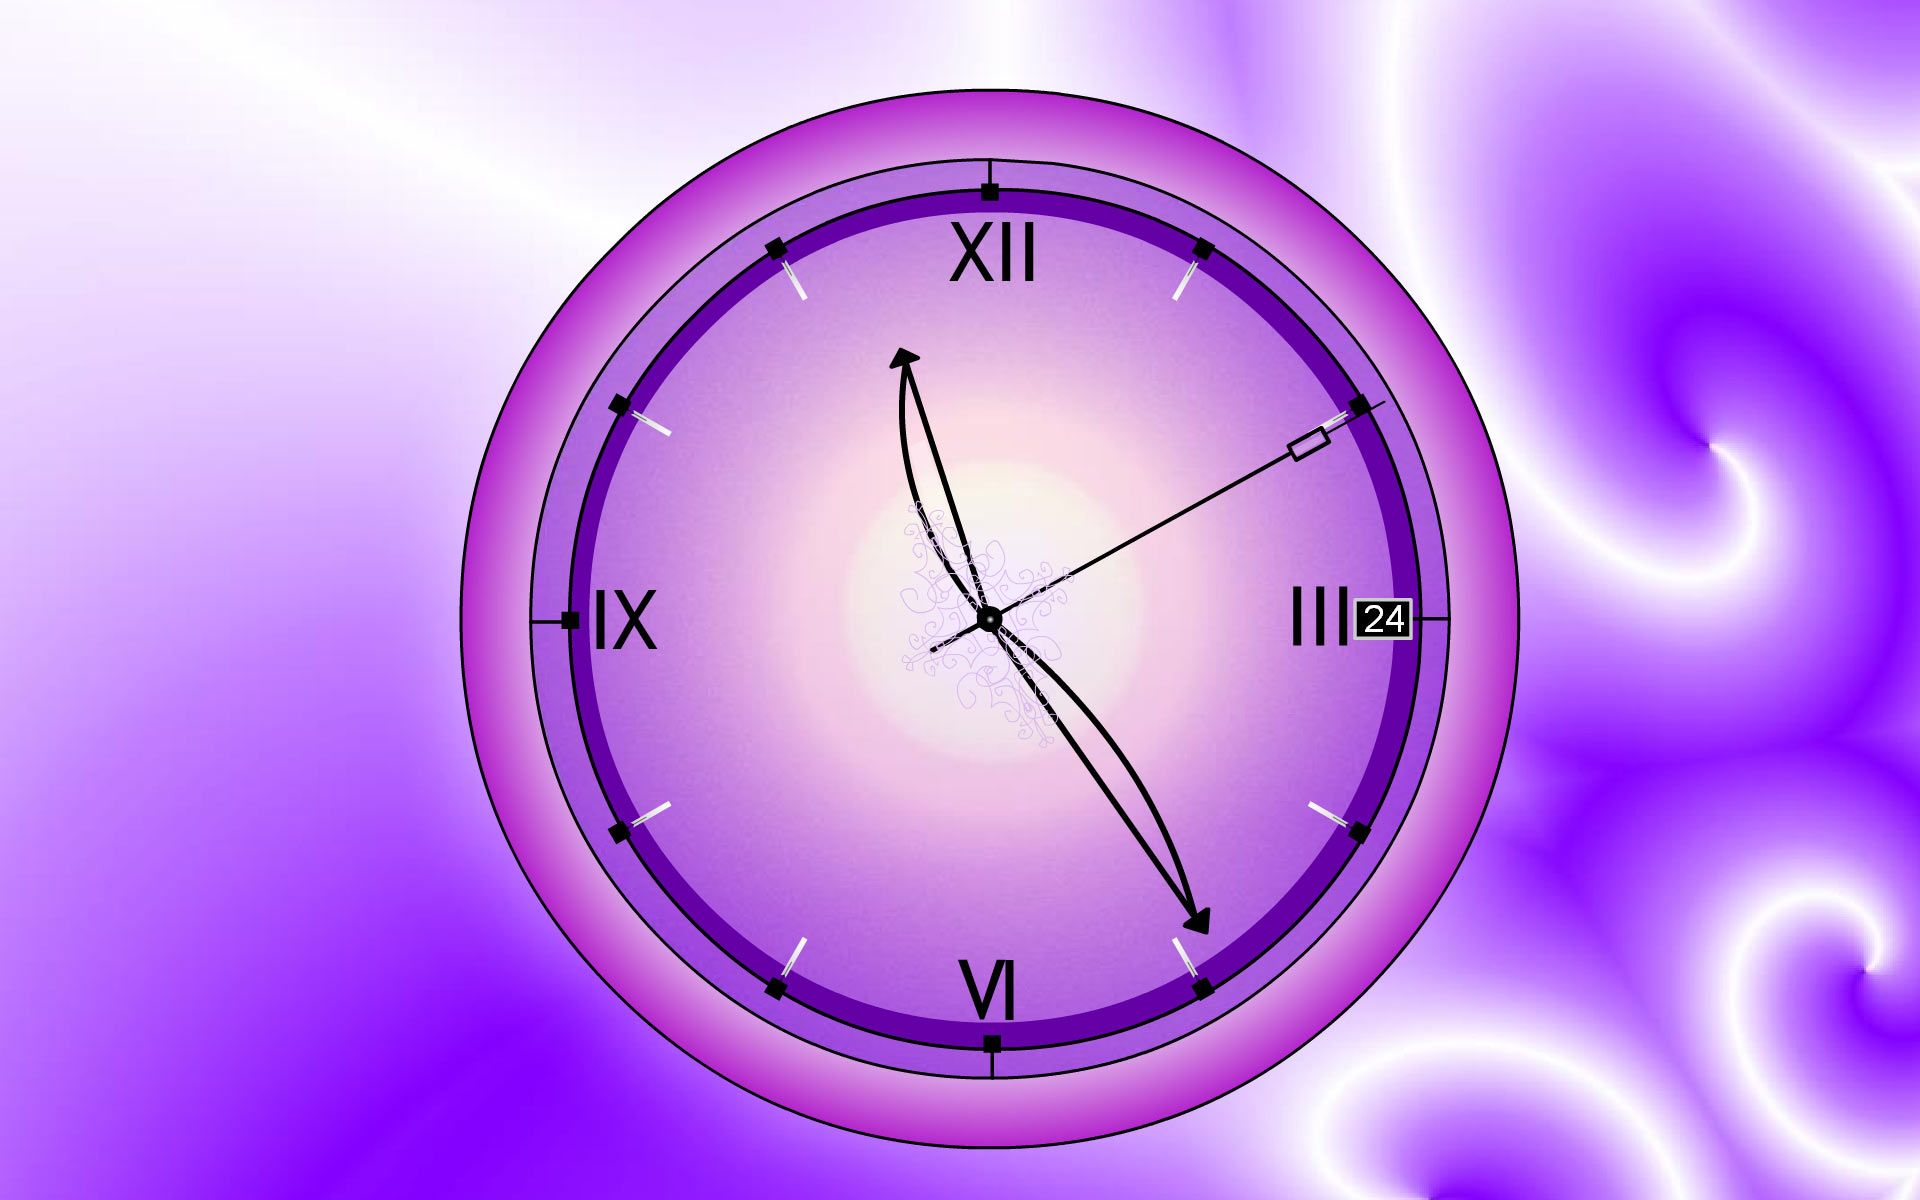 Lacy Clock Screensaver Personalize Your Windows Environment Clock Wallpaper Clock Screensaver Clock